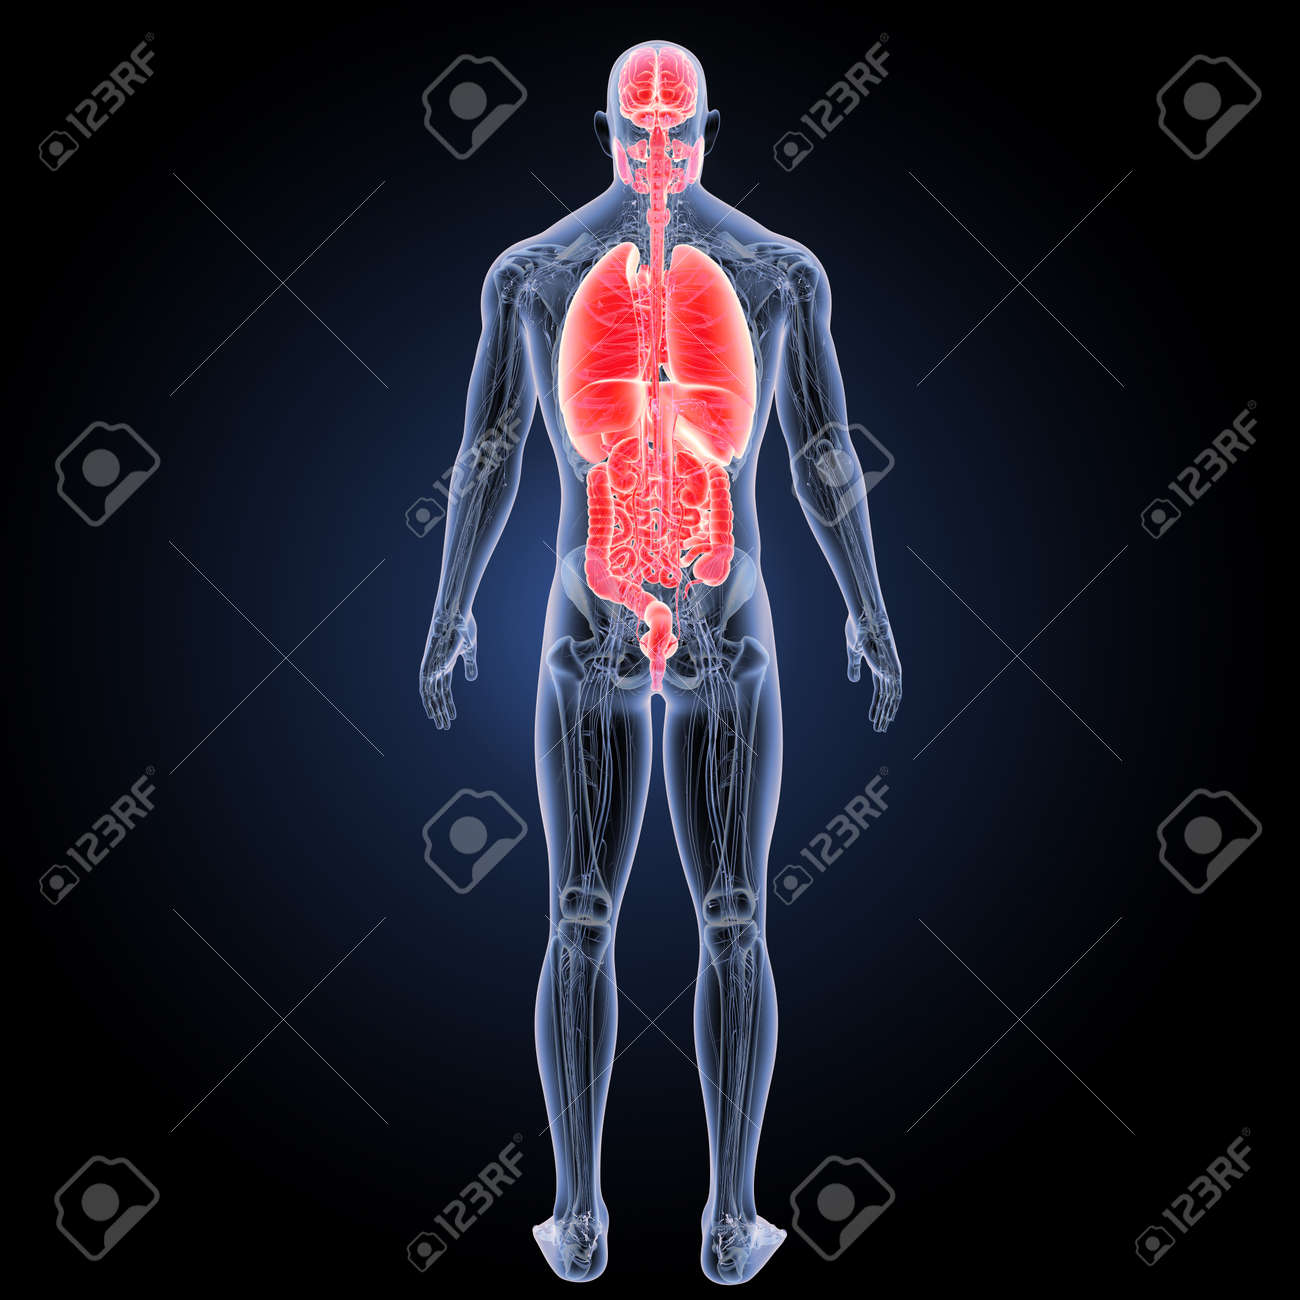 Human Organs With Anatomy Posterior View Stock Photo Picture And